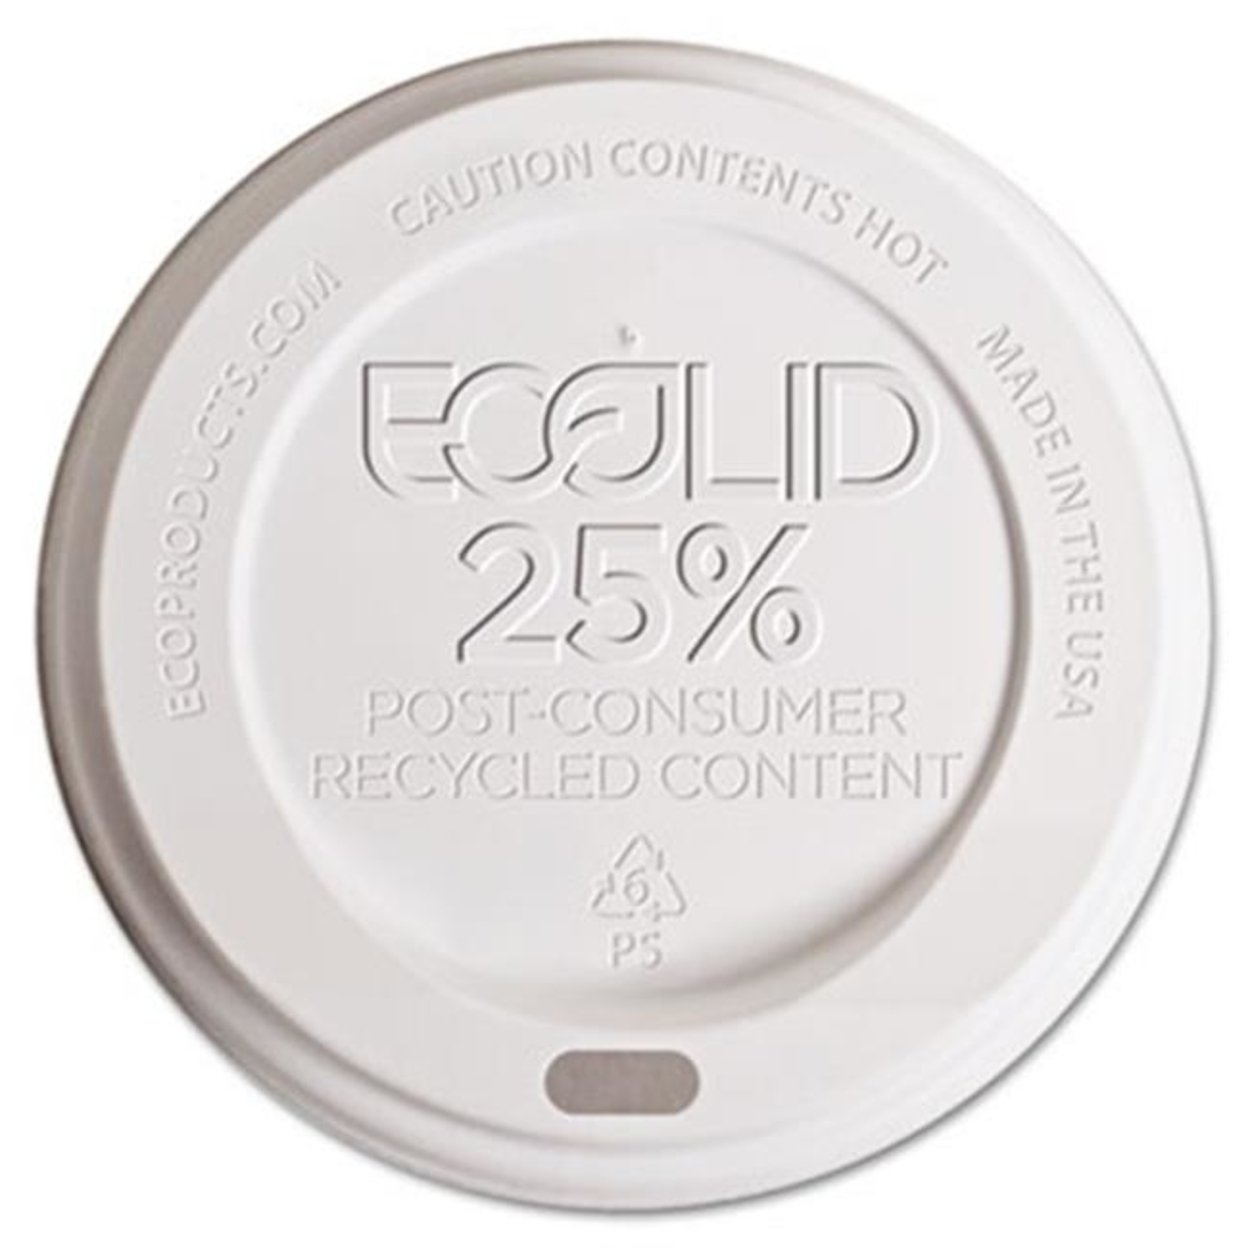 Eco-Products Ep-Hl16-Wr Eco-Lid 25 Percent Recycled Content Hot Cup Lid Fits 10-20 oz Cups 1000-Carton 59f0ab74e224615ade155672